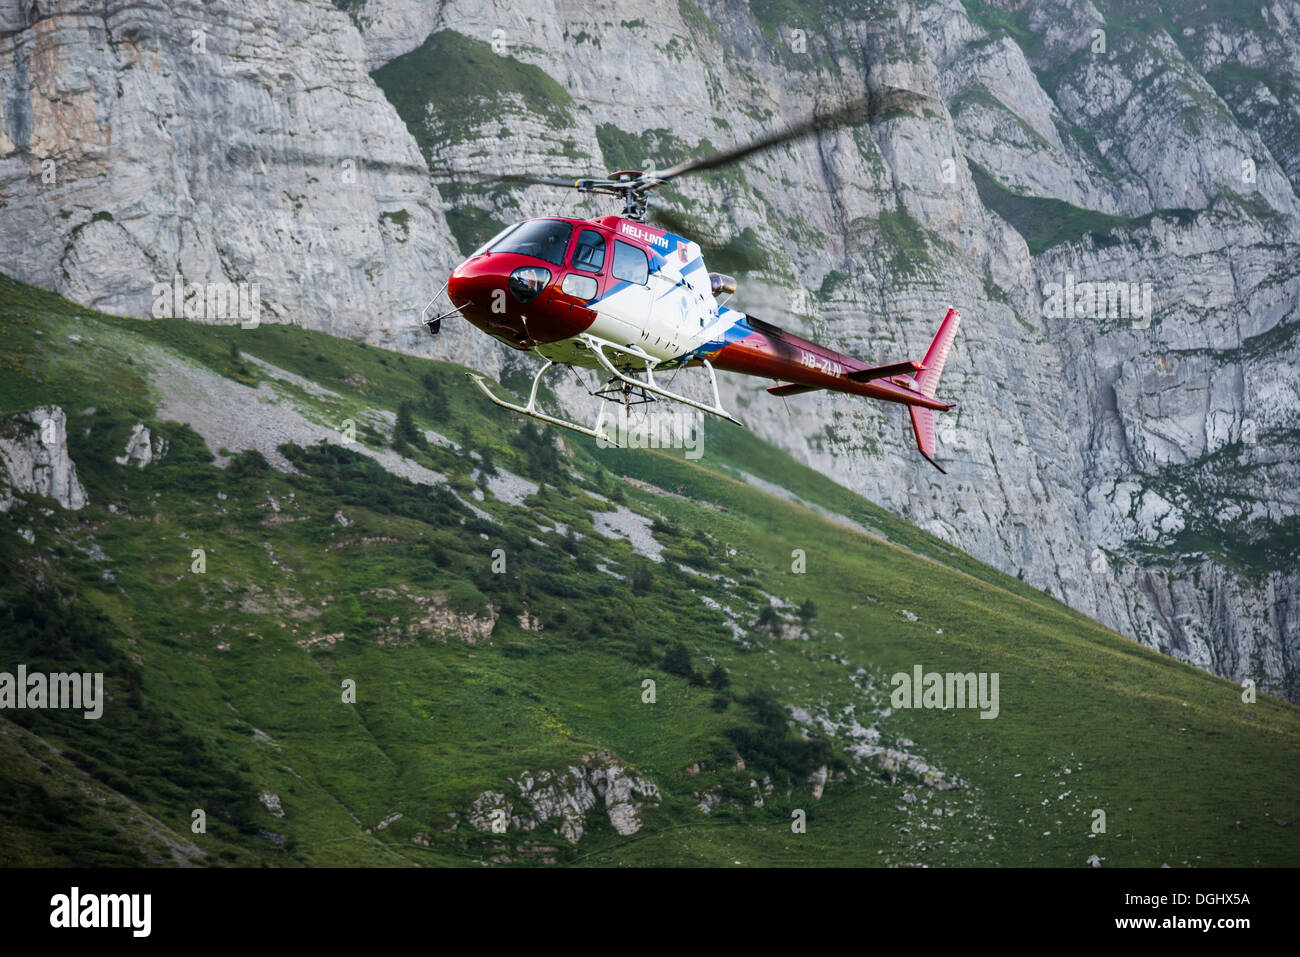 Helicopter at Saentis Mountain, Saentis, Hundwil, Canton of Appenzell Ausserrhoden, Switzerland - Stock Image